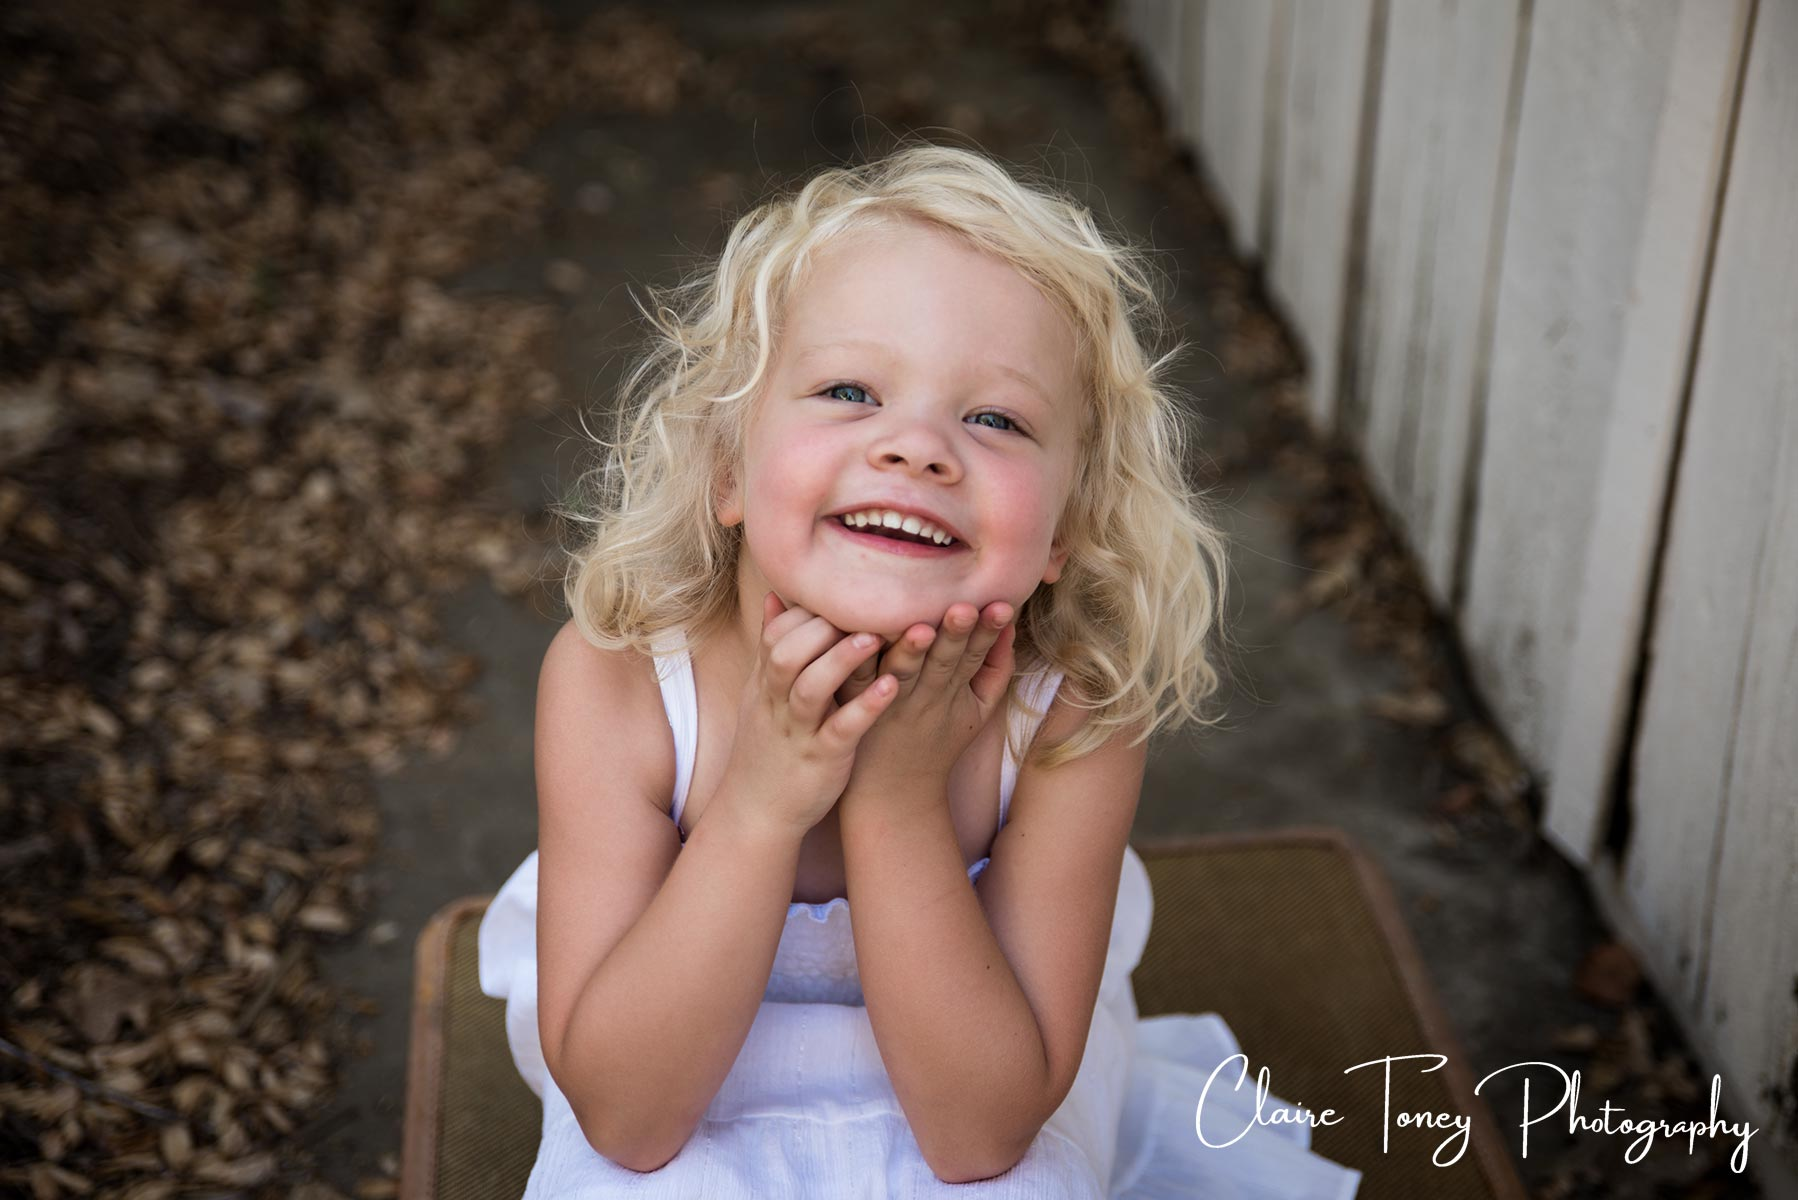 Little girl with her hands under her chin, smiling. Claire Toney Photography, Sacramento Photographer